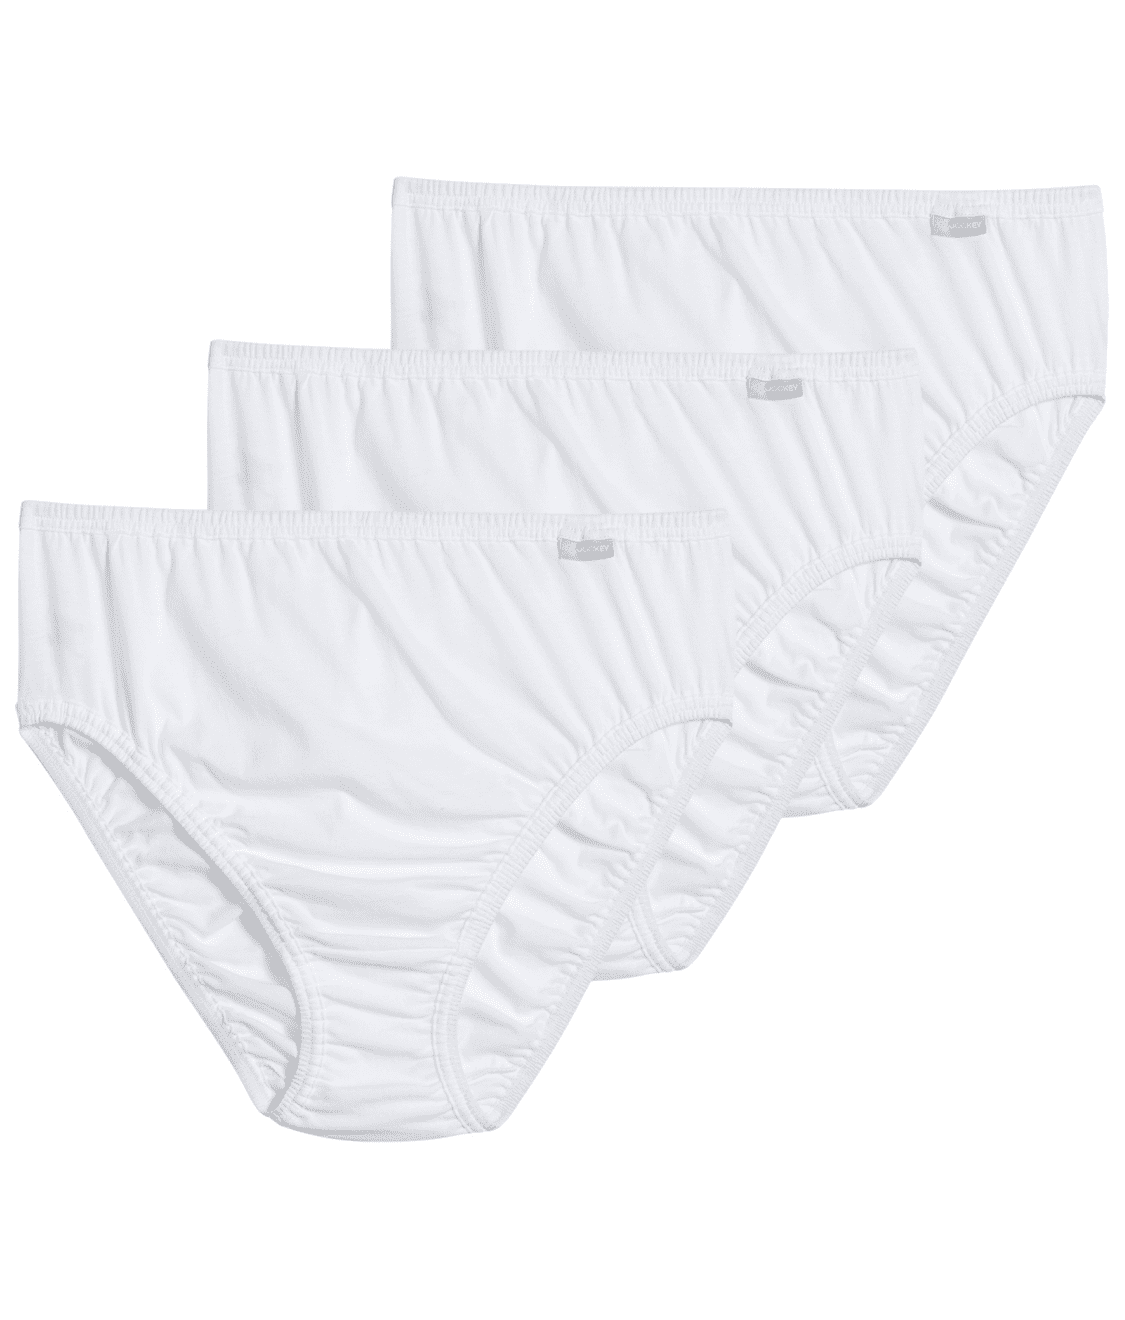 f5500cf3add See Plus Size Elance French Cut Brief 3-Pack in White